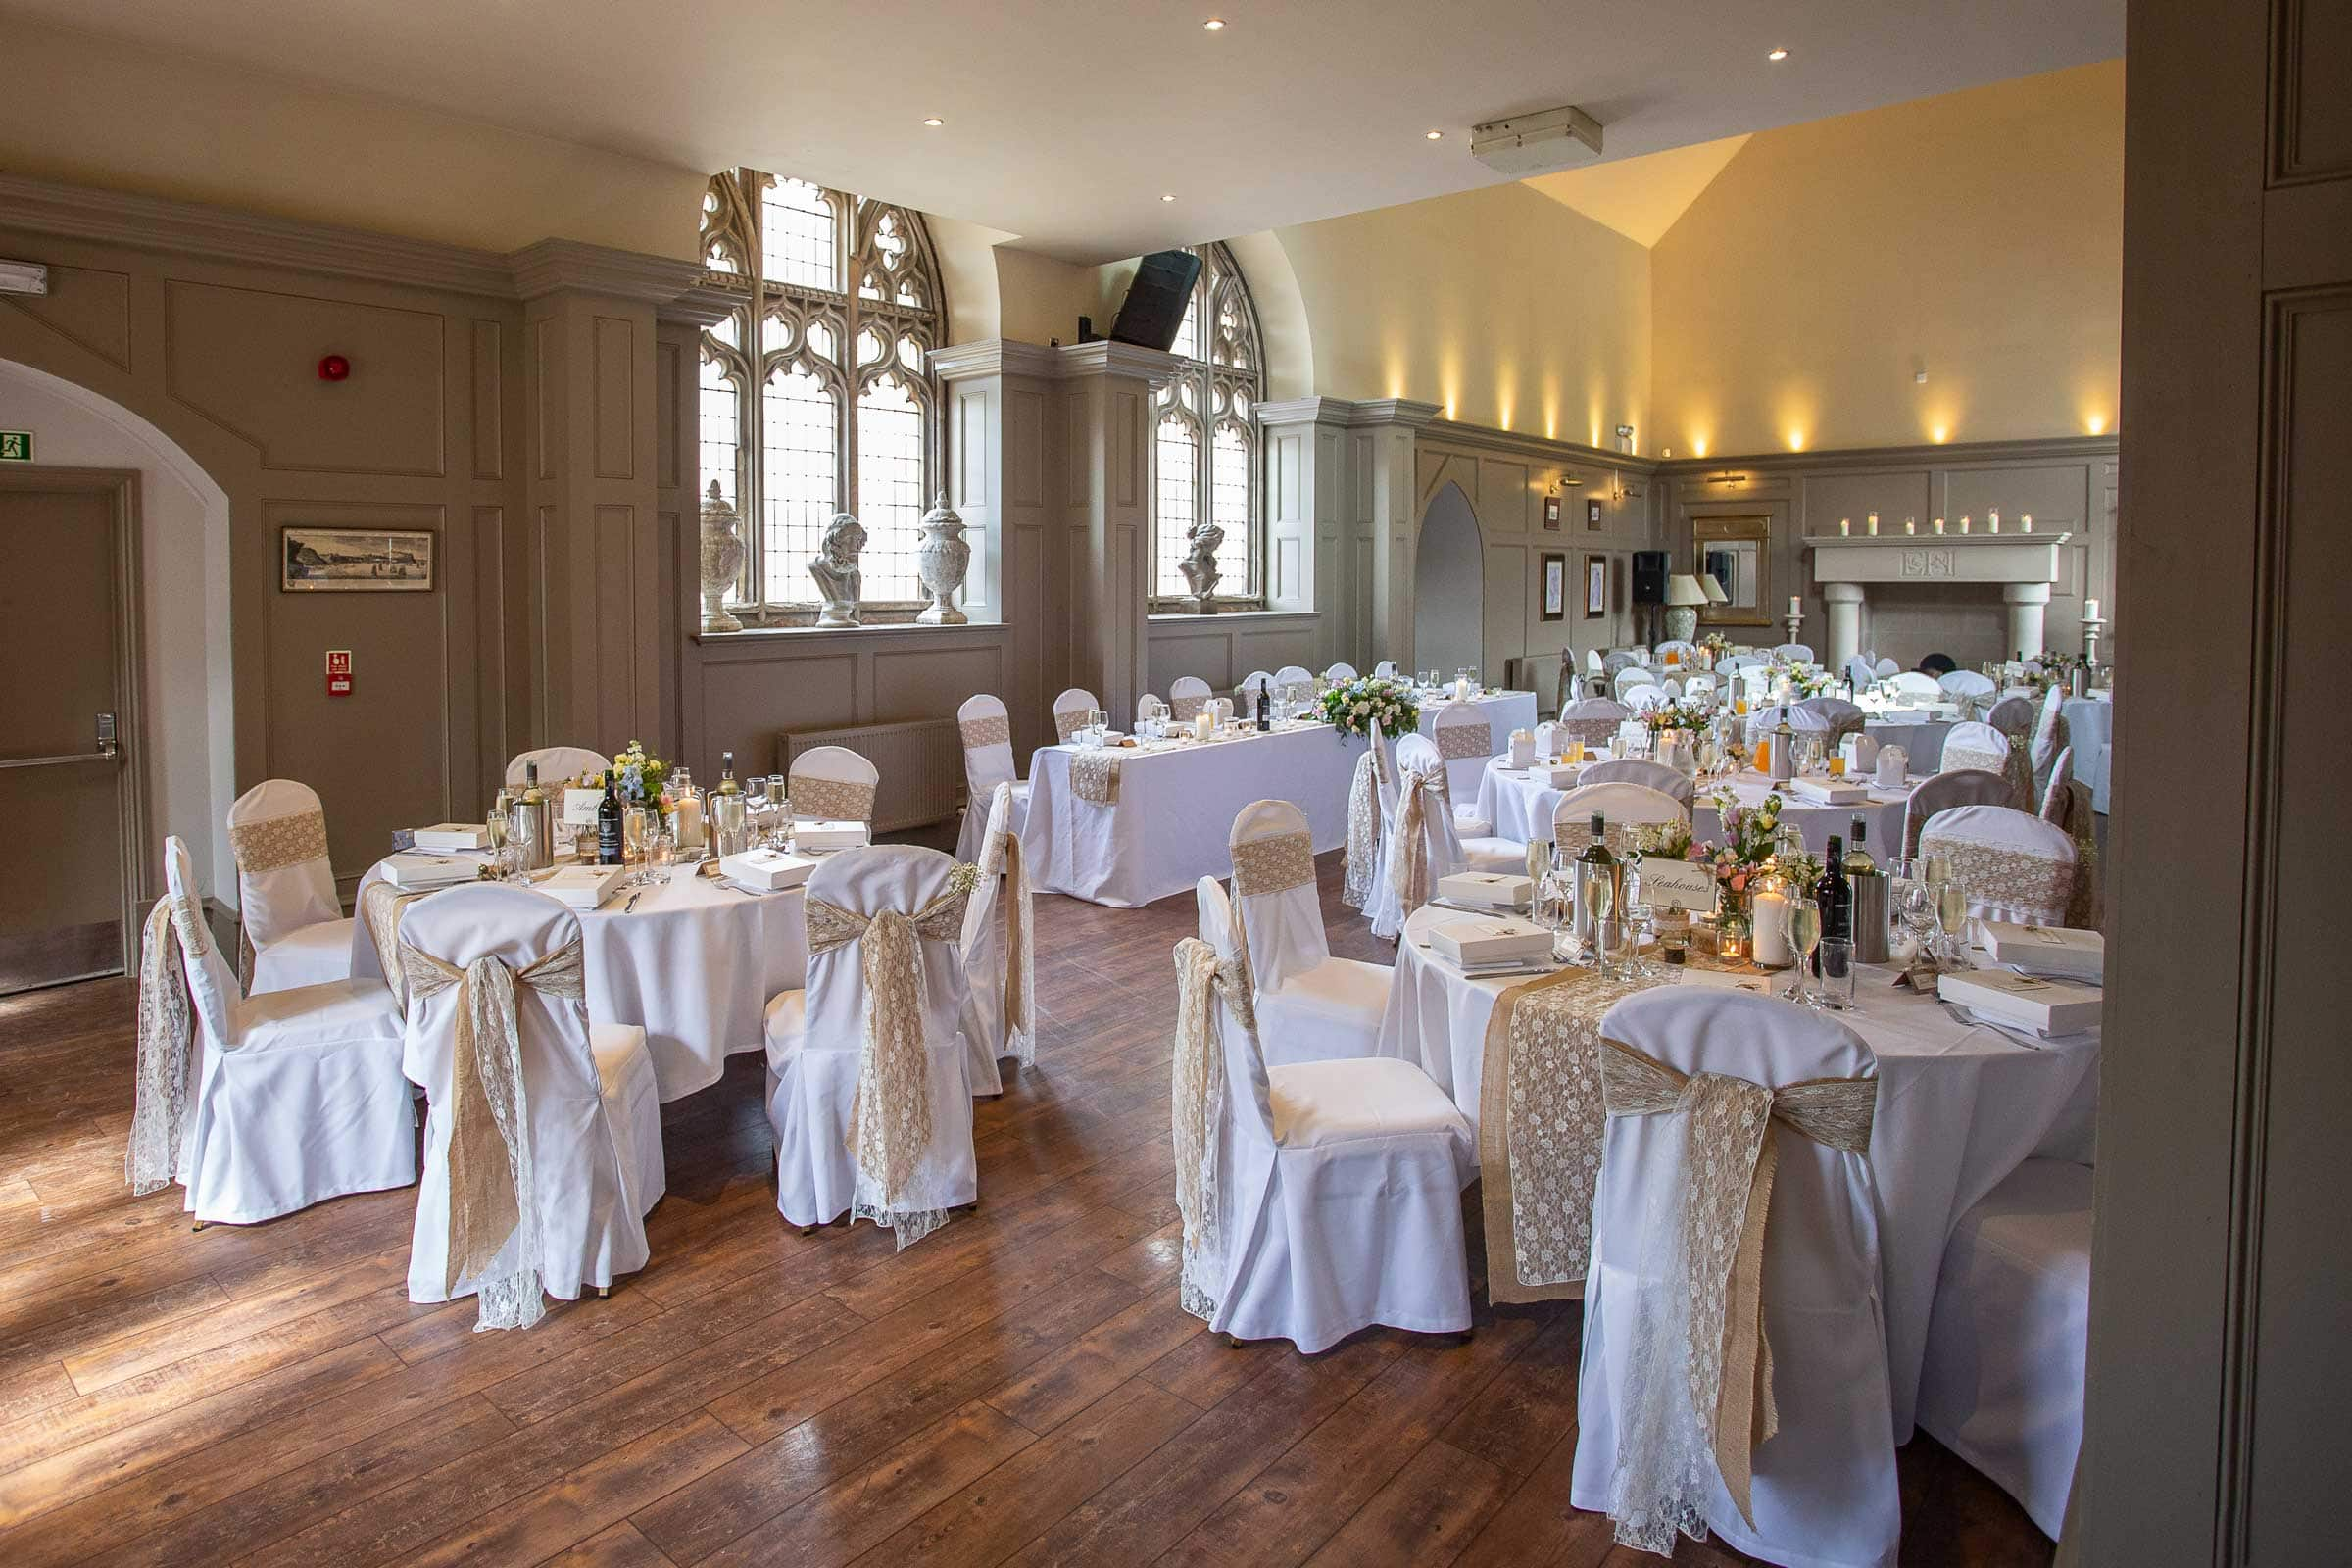 Photo of the wedding reception room at Ellingham Hall